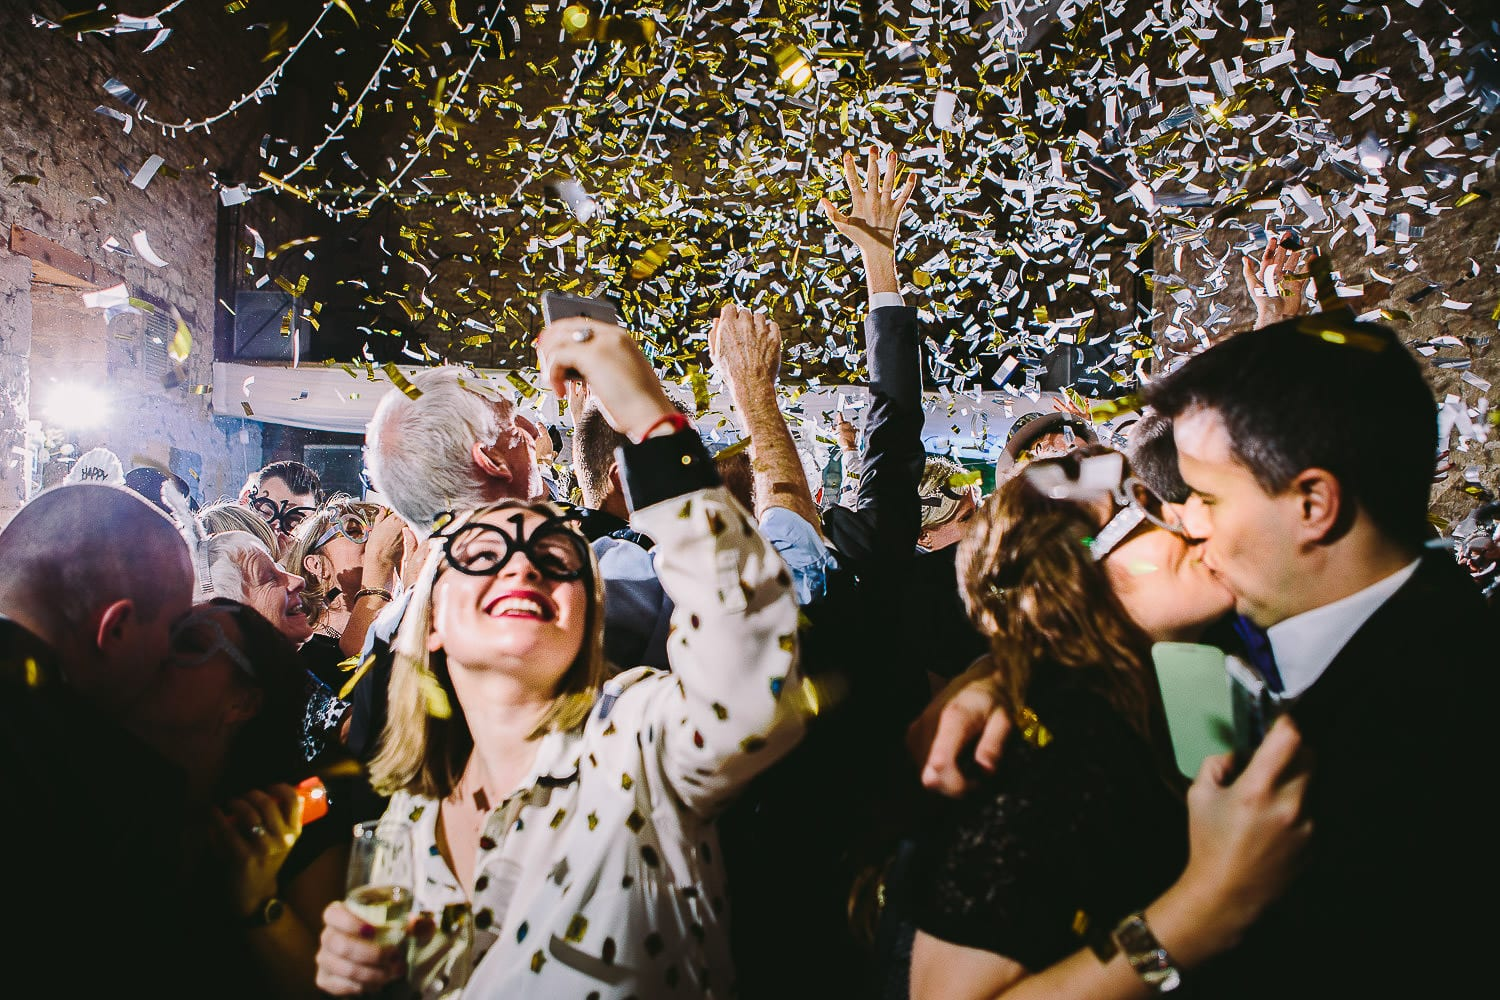 Confetti cannons going off at midnight over guests on the dance floor